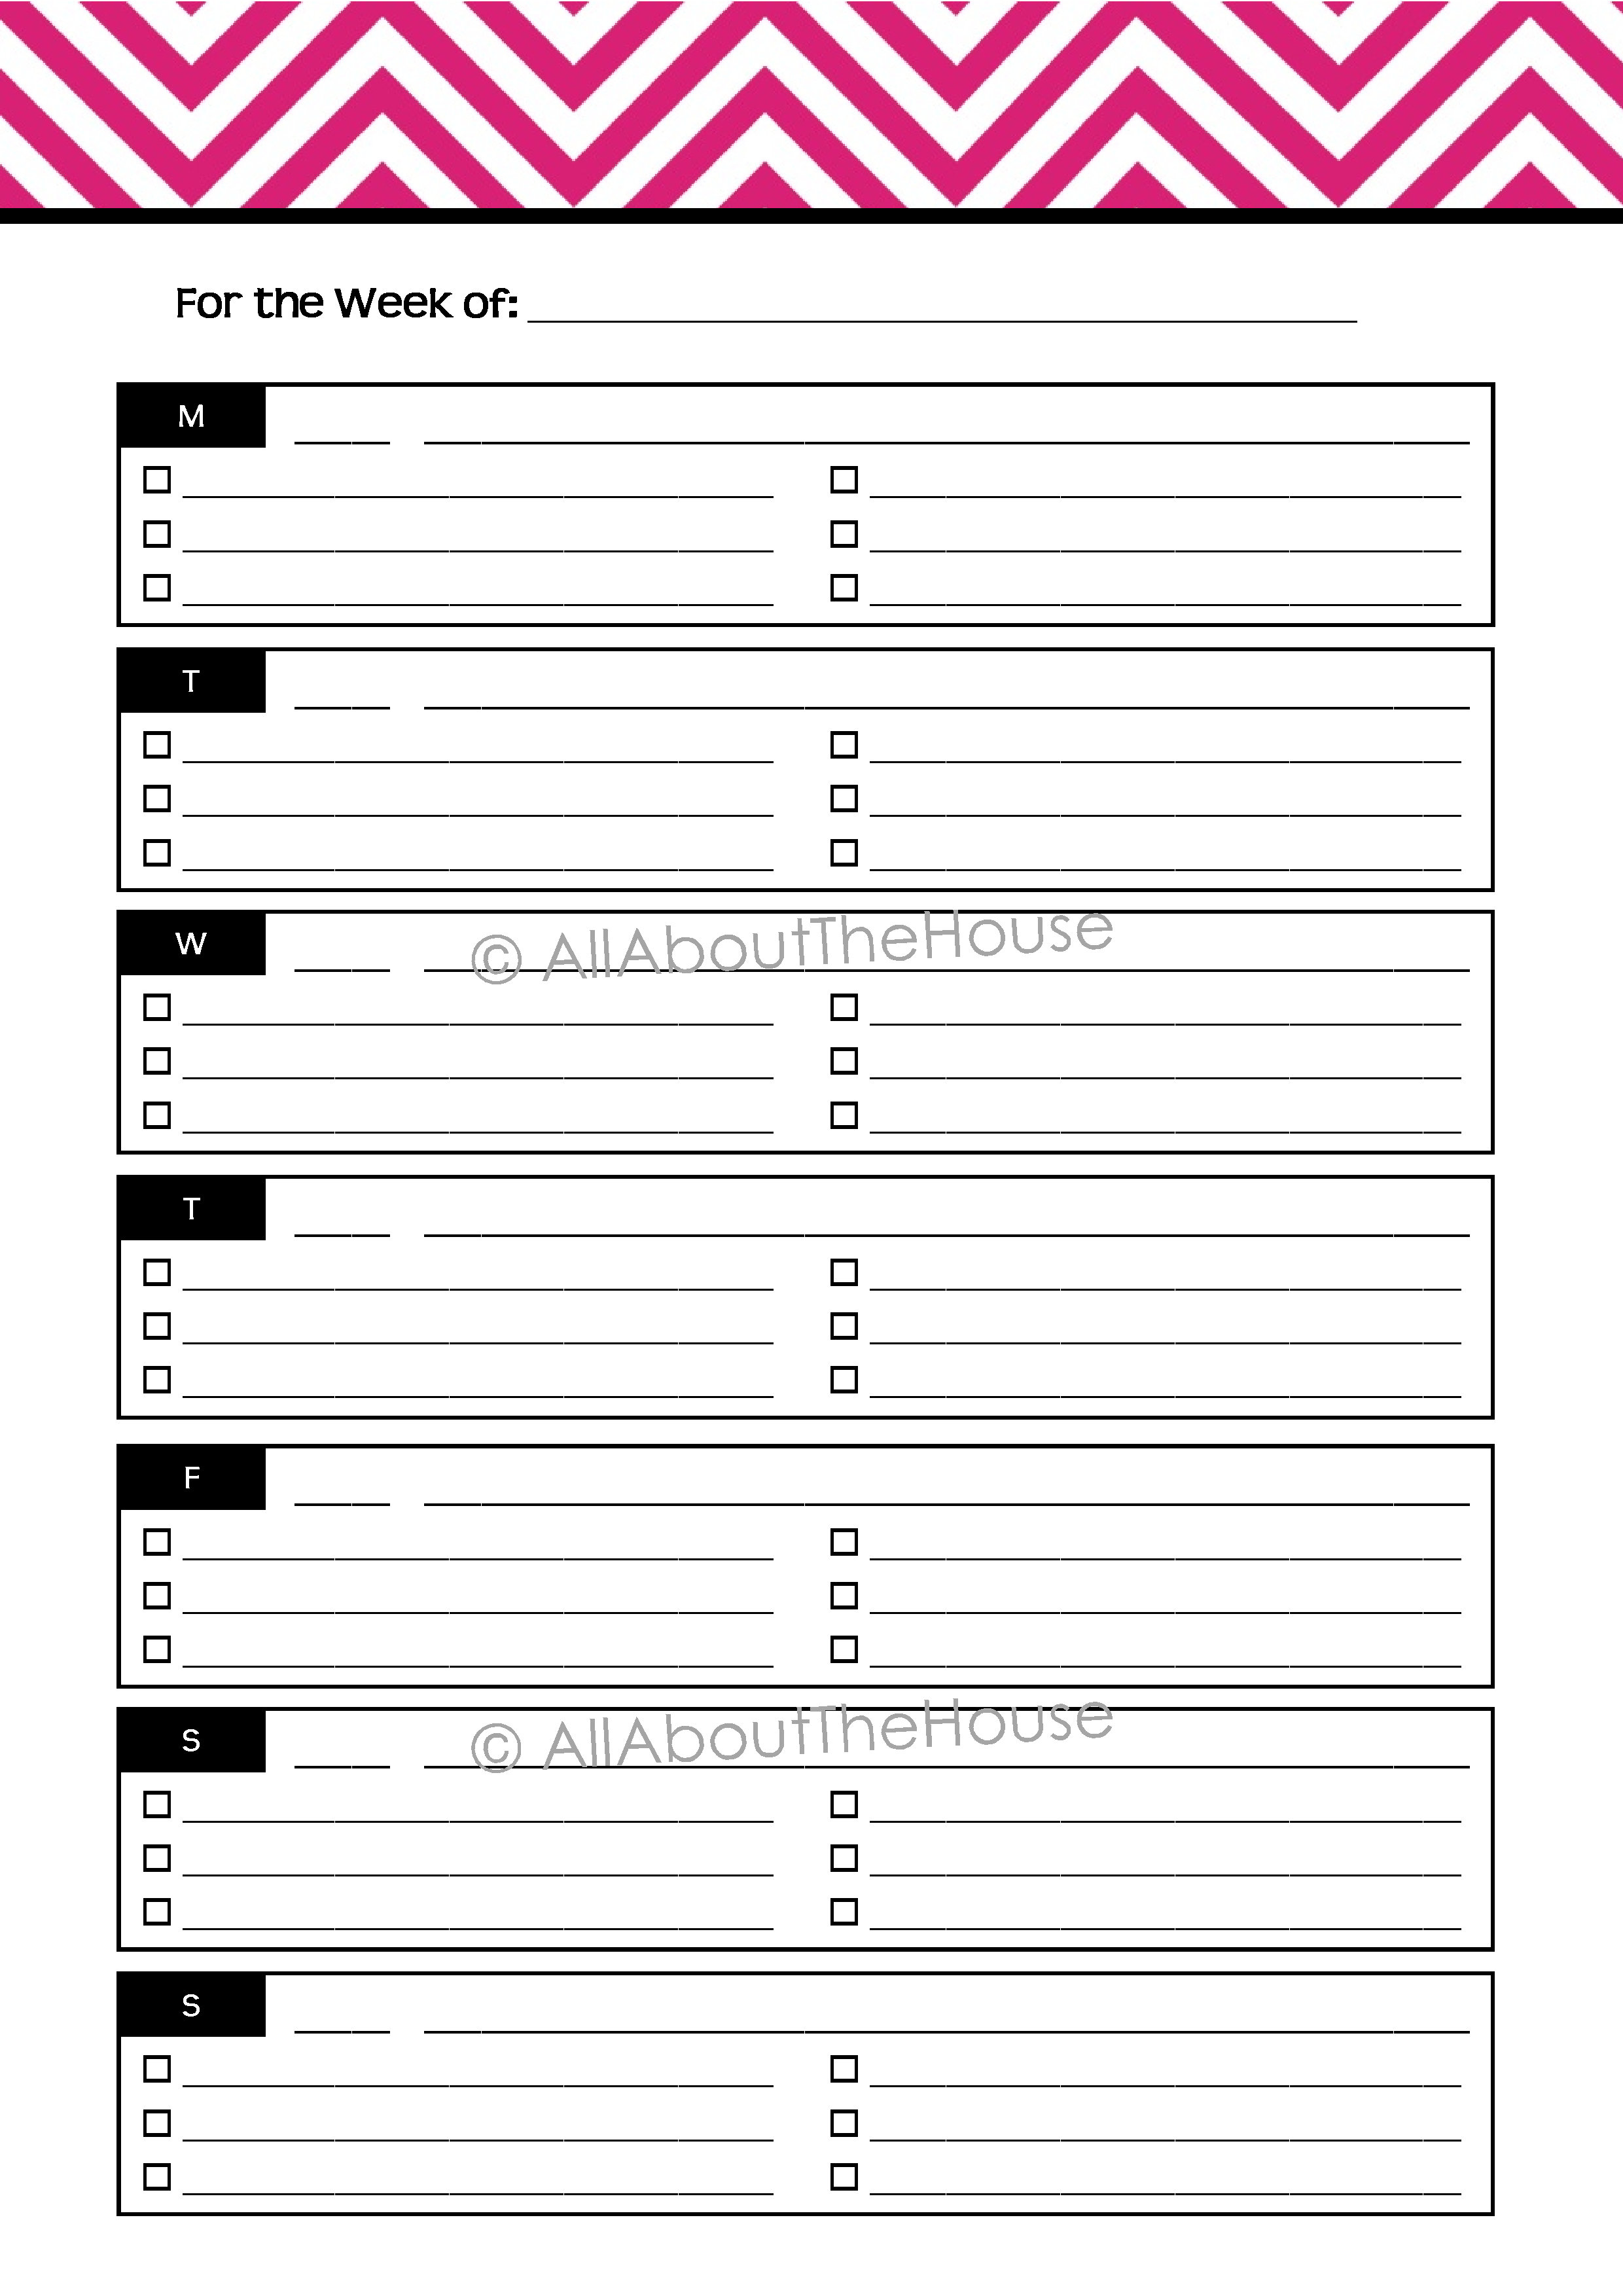 Planner - Option 4 - AllAboutTheHouse